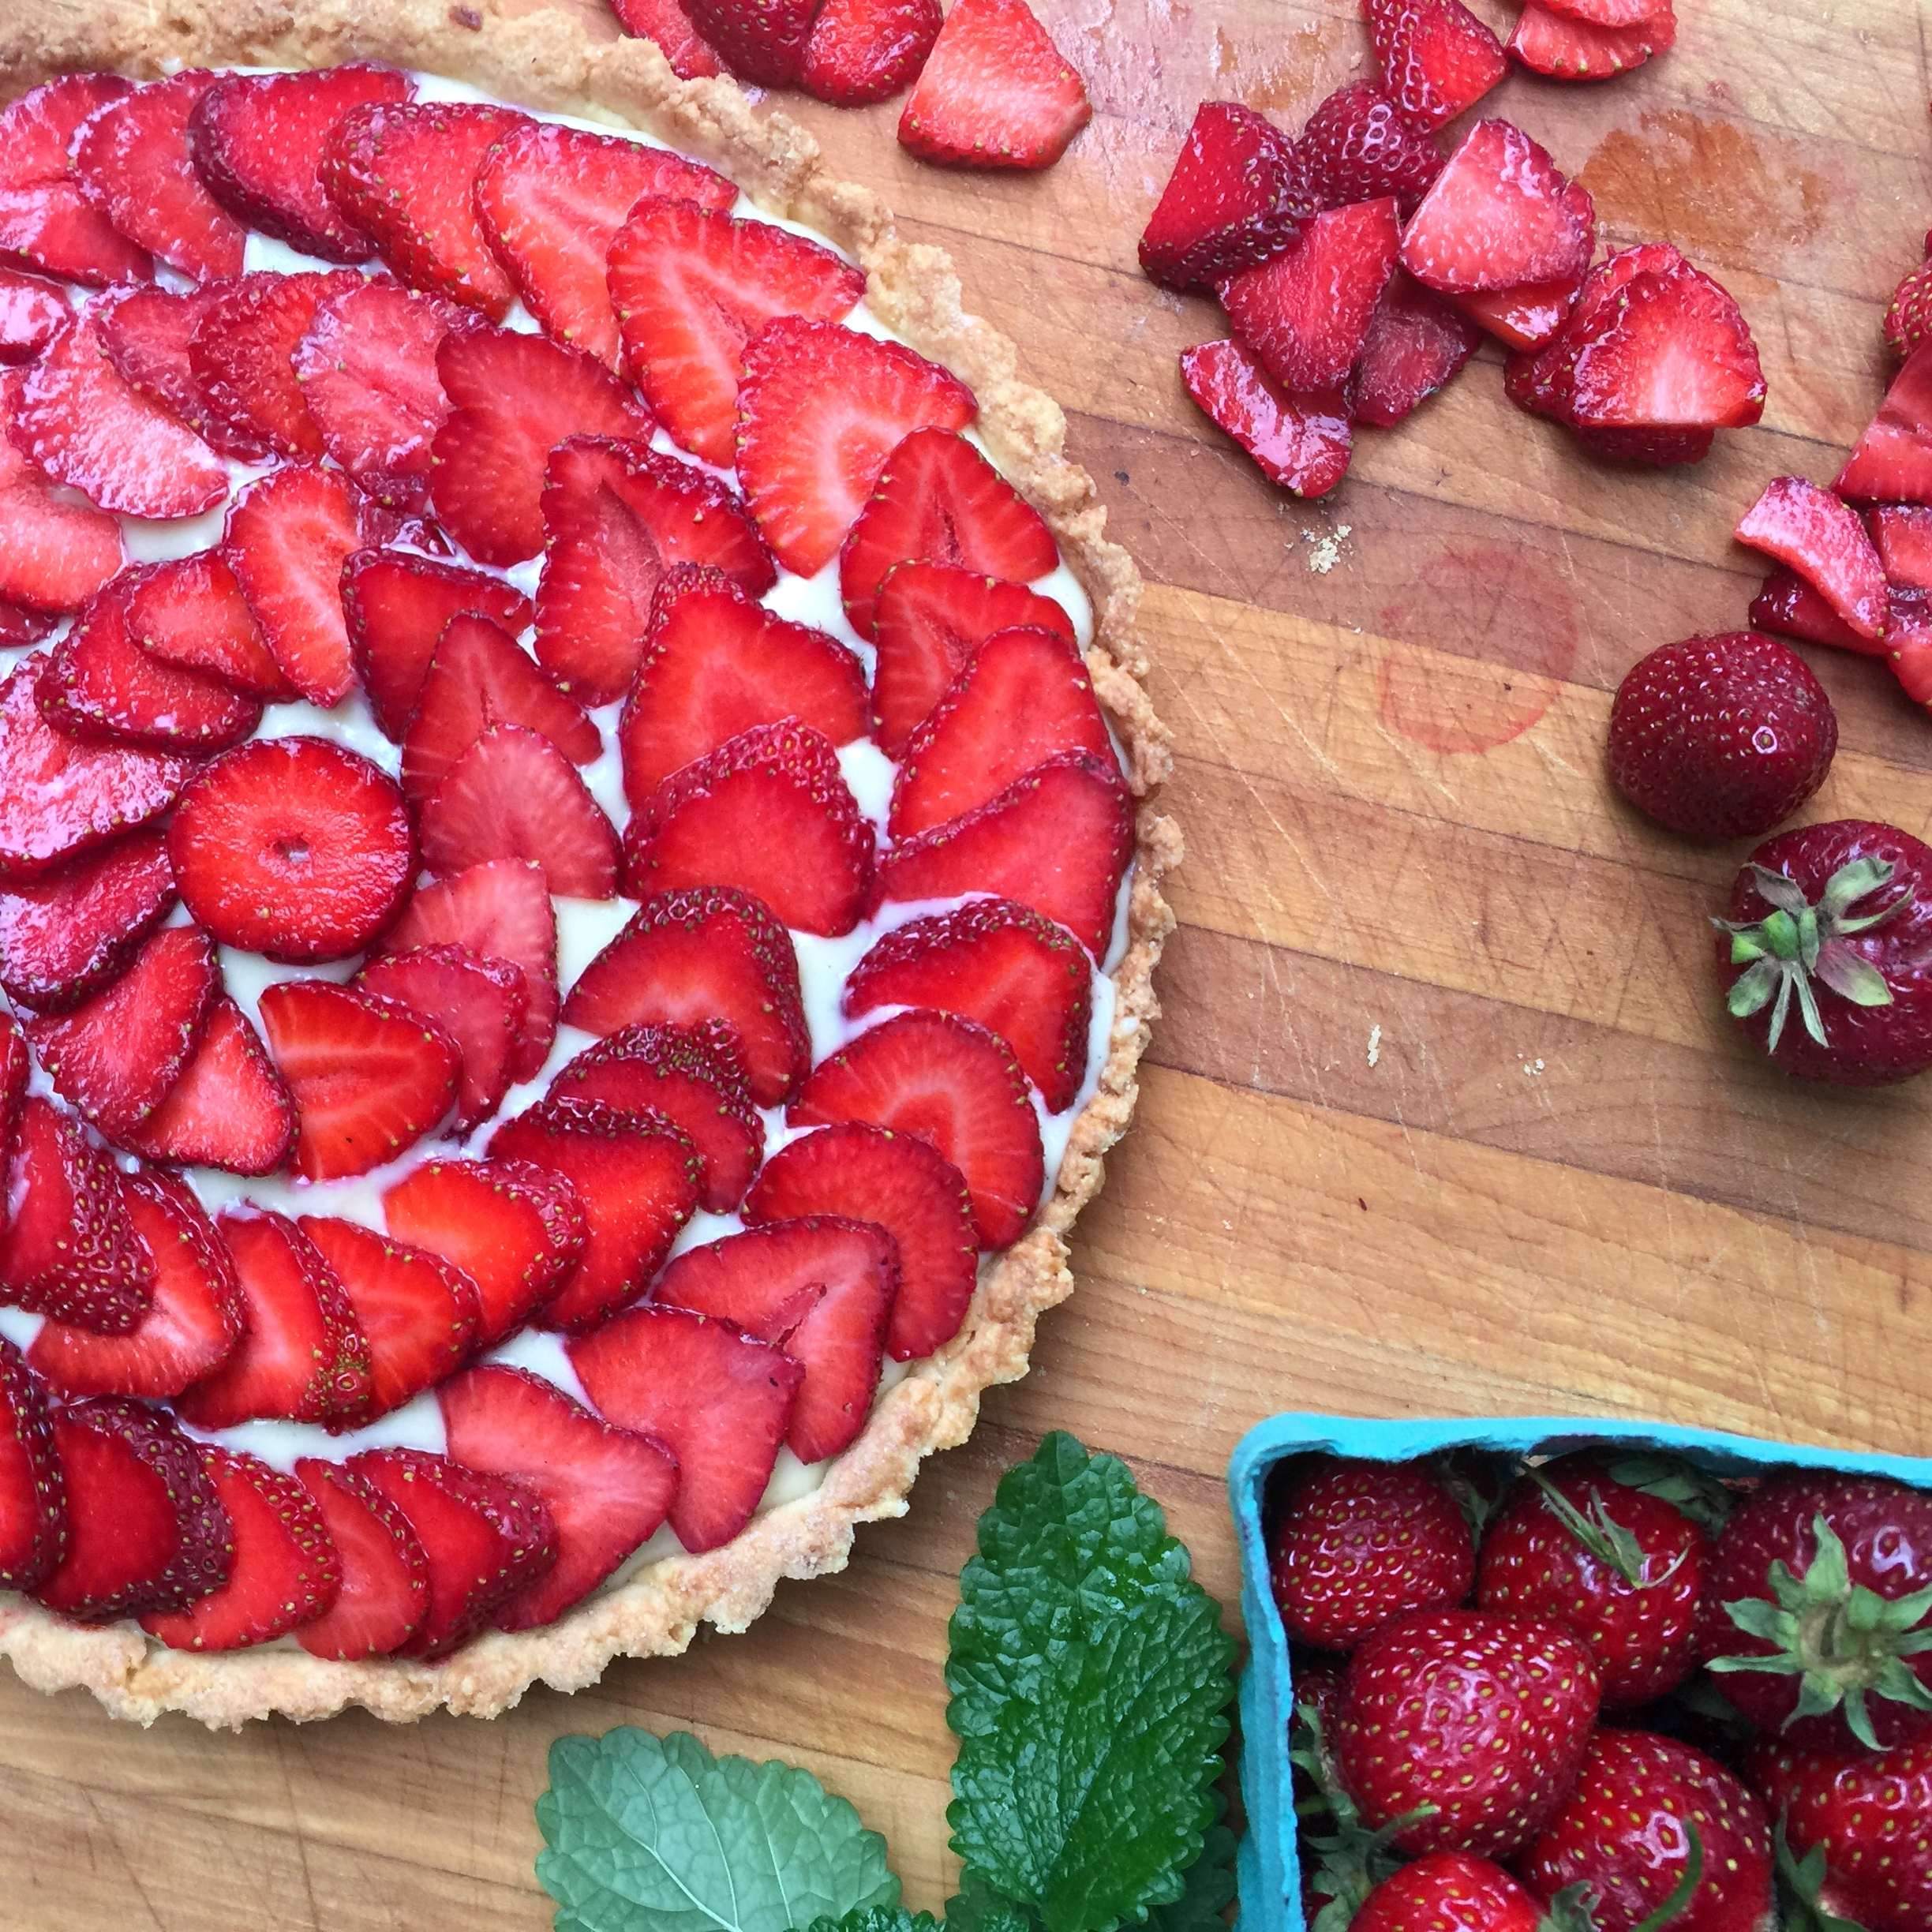 A fresh strawberry tart the simply luxurious life for Simply luxurious life blog